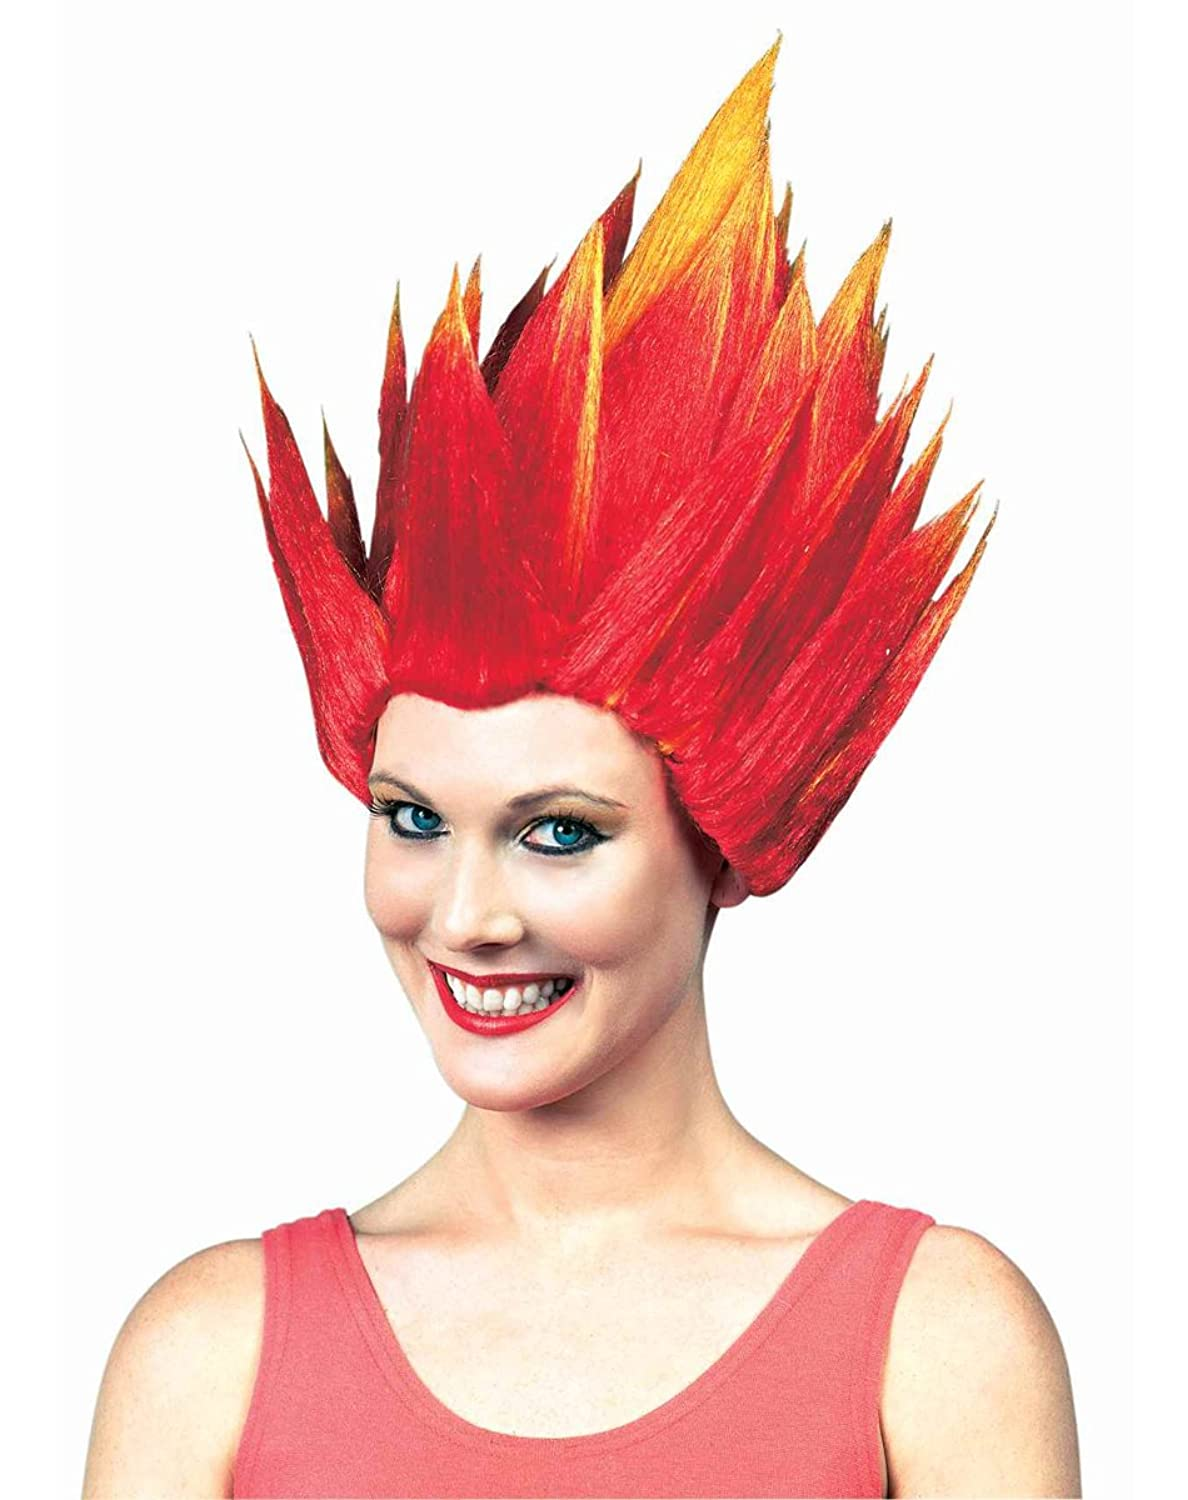 Elemental Fire Ice Spiked Wig